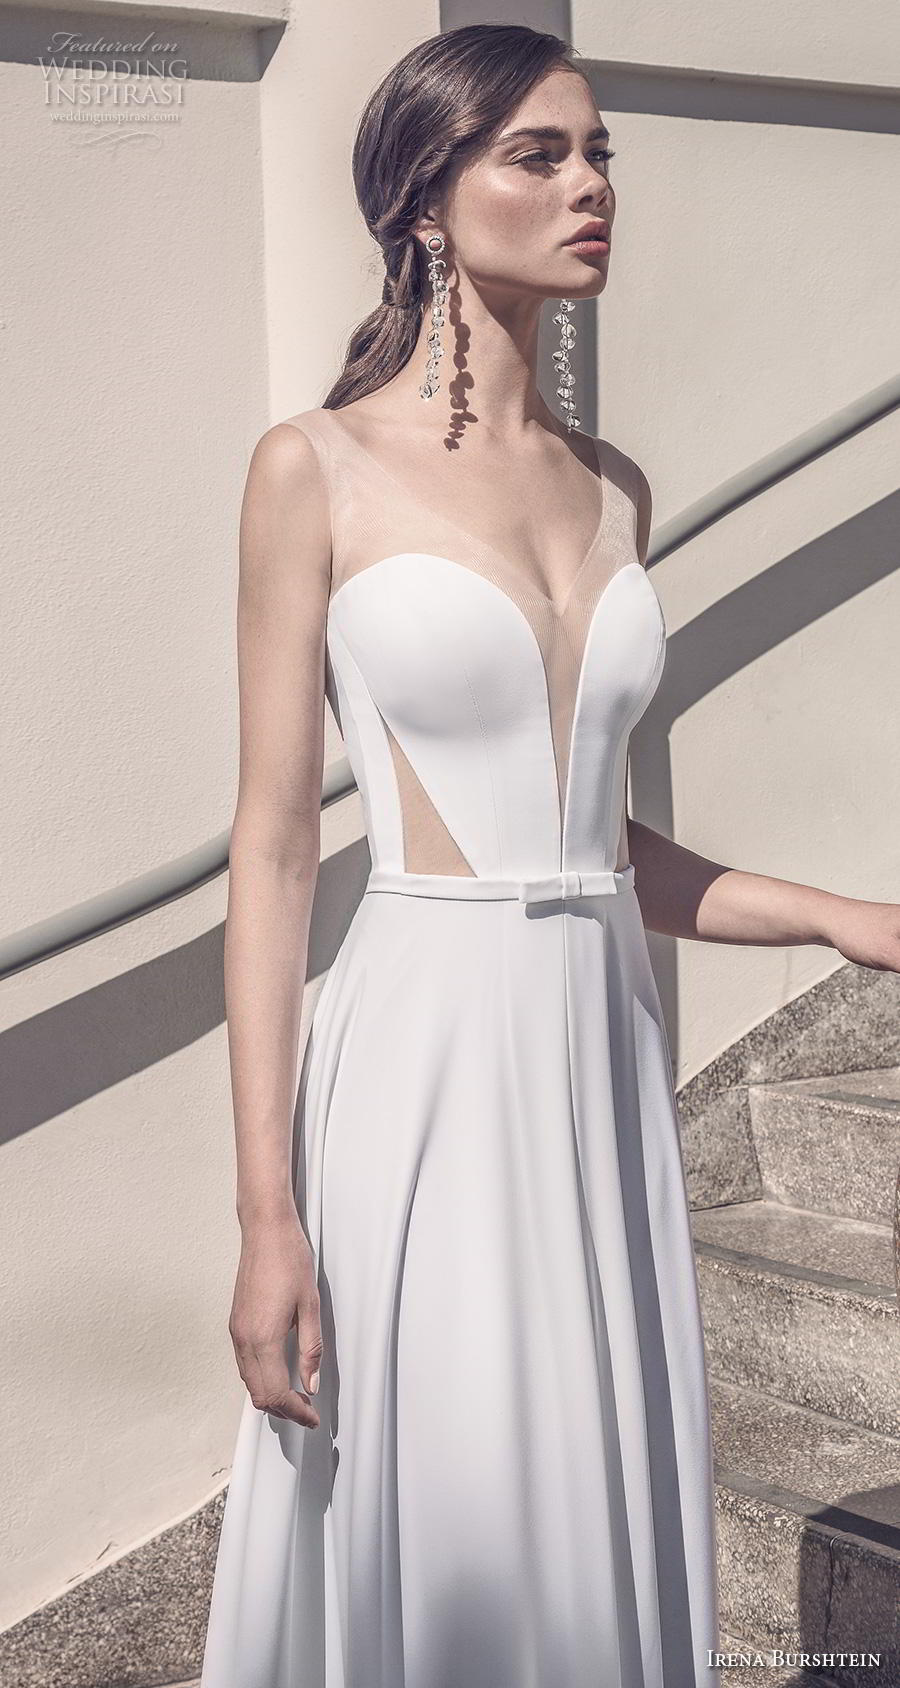 irena burshtein 2020 bridal sleeveless deep sweetheart neckline simple minimalist elegant slit skirt sheath wedding dress backless v back chapel train (7) zv